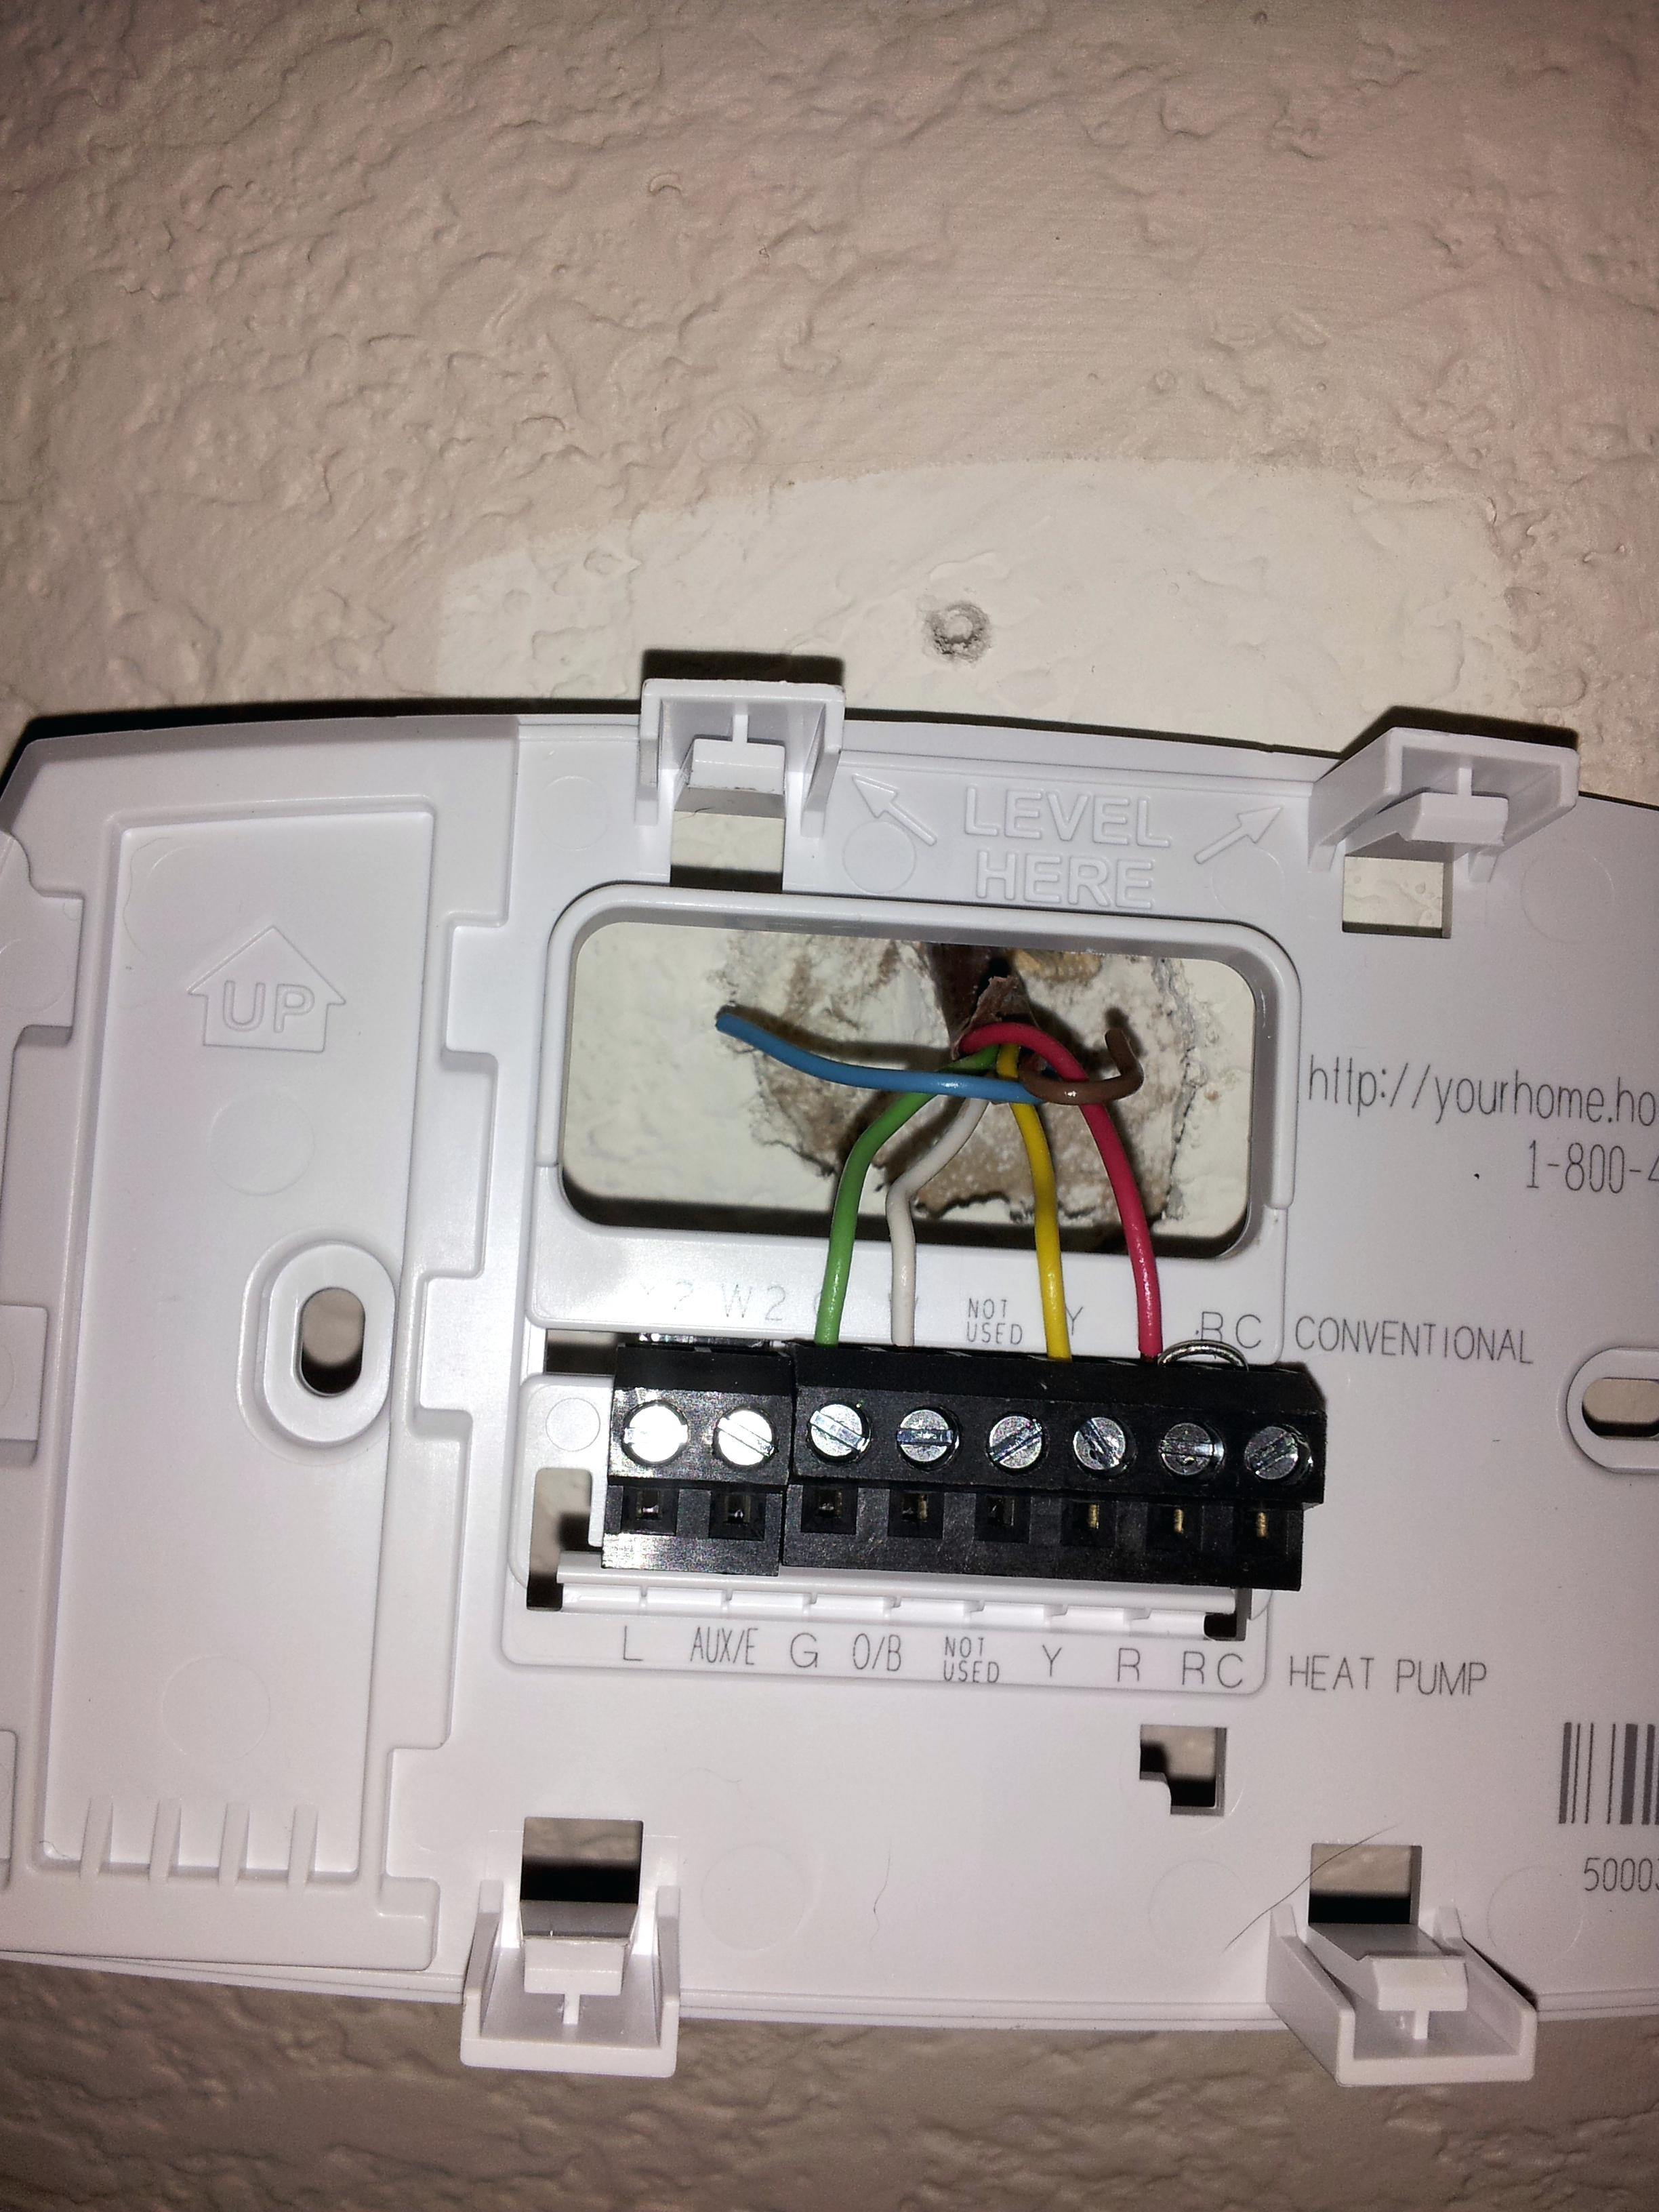 Honeywell Thermostat Wiring Diagrams Best Of Honeywell Rth9580Wf - Honeywell Rth9580Wf Wiring Diagram